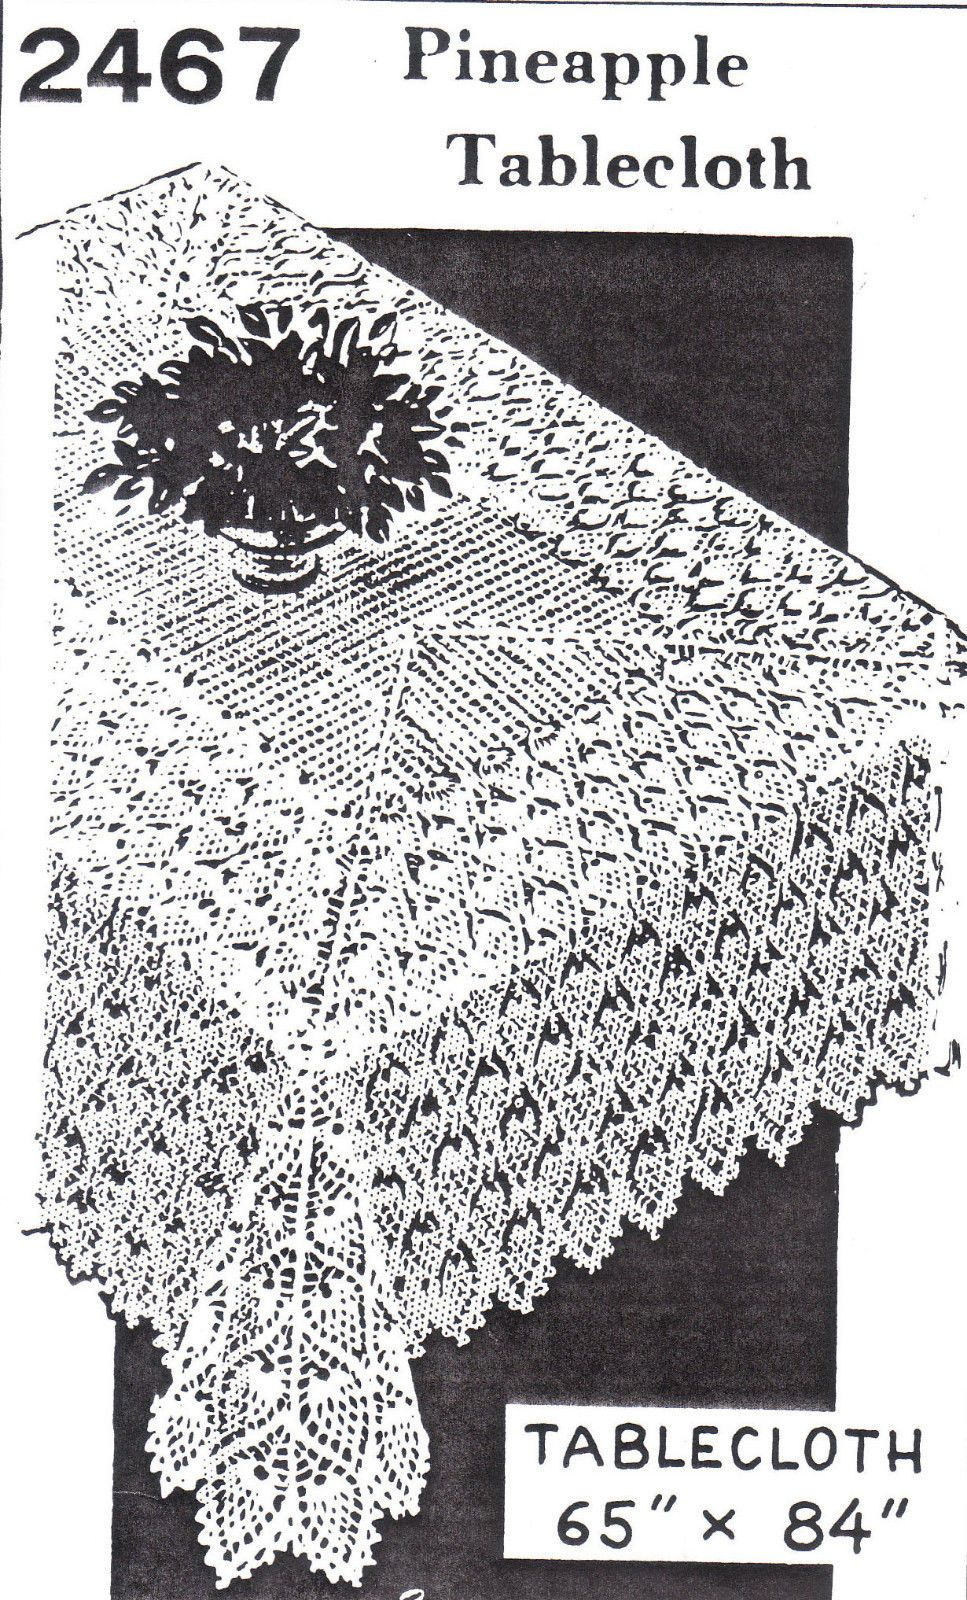 Pineapple Tablecloth Cloth Crochet Pattern Vintage Mail Order | eBay ...